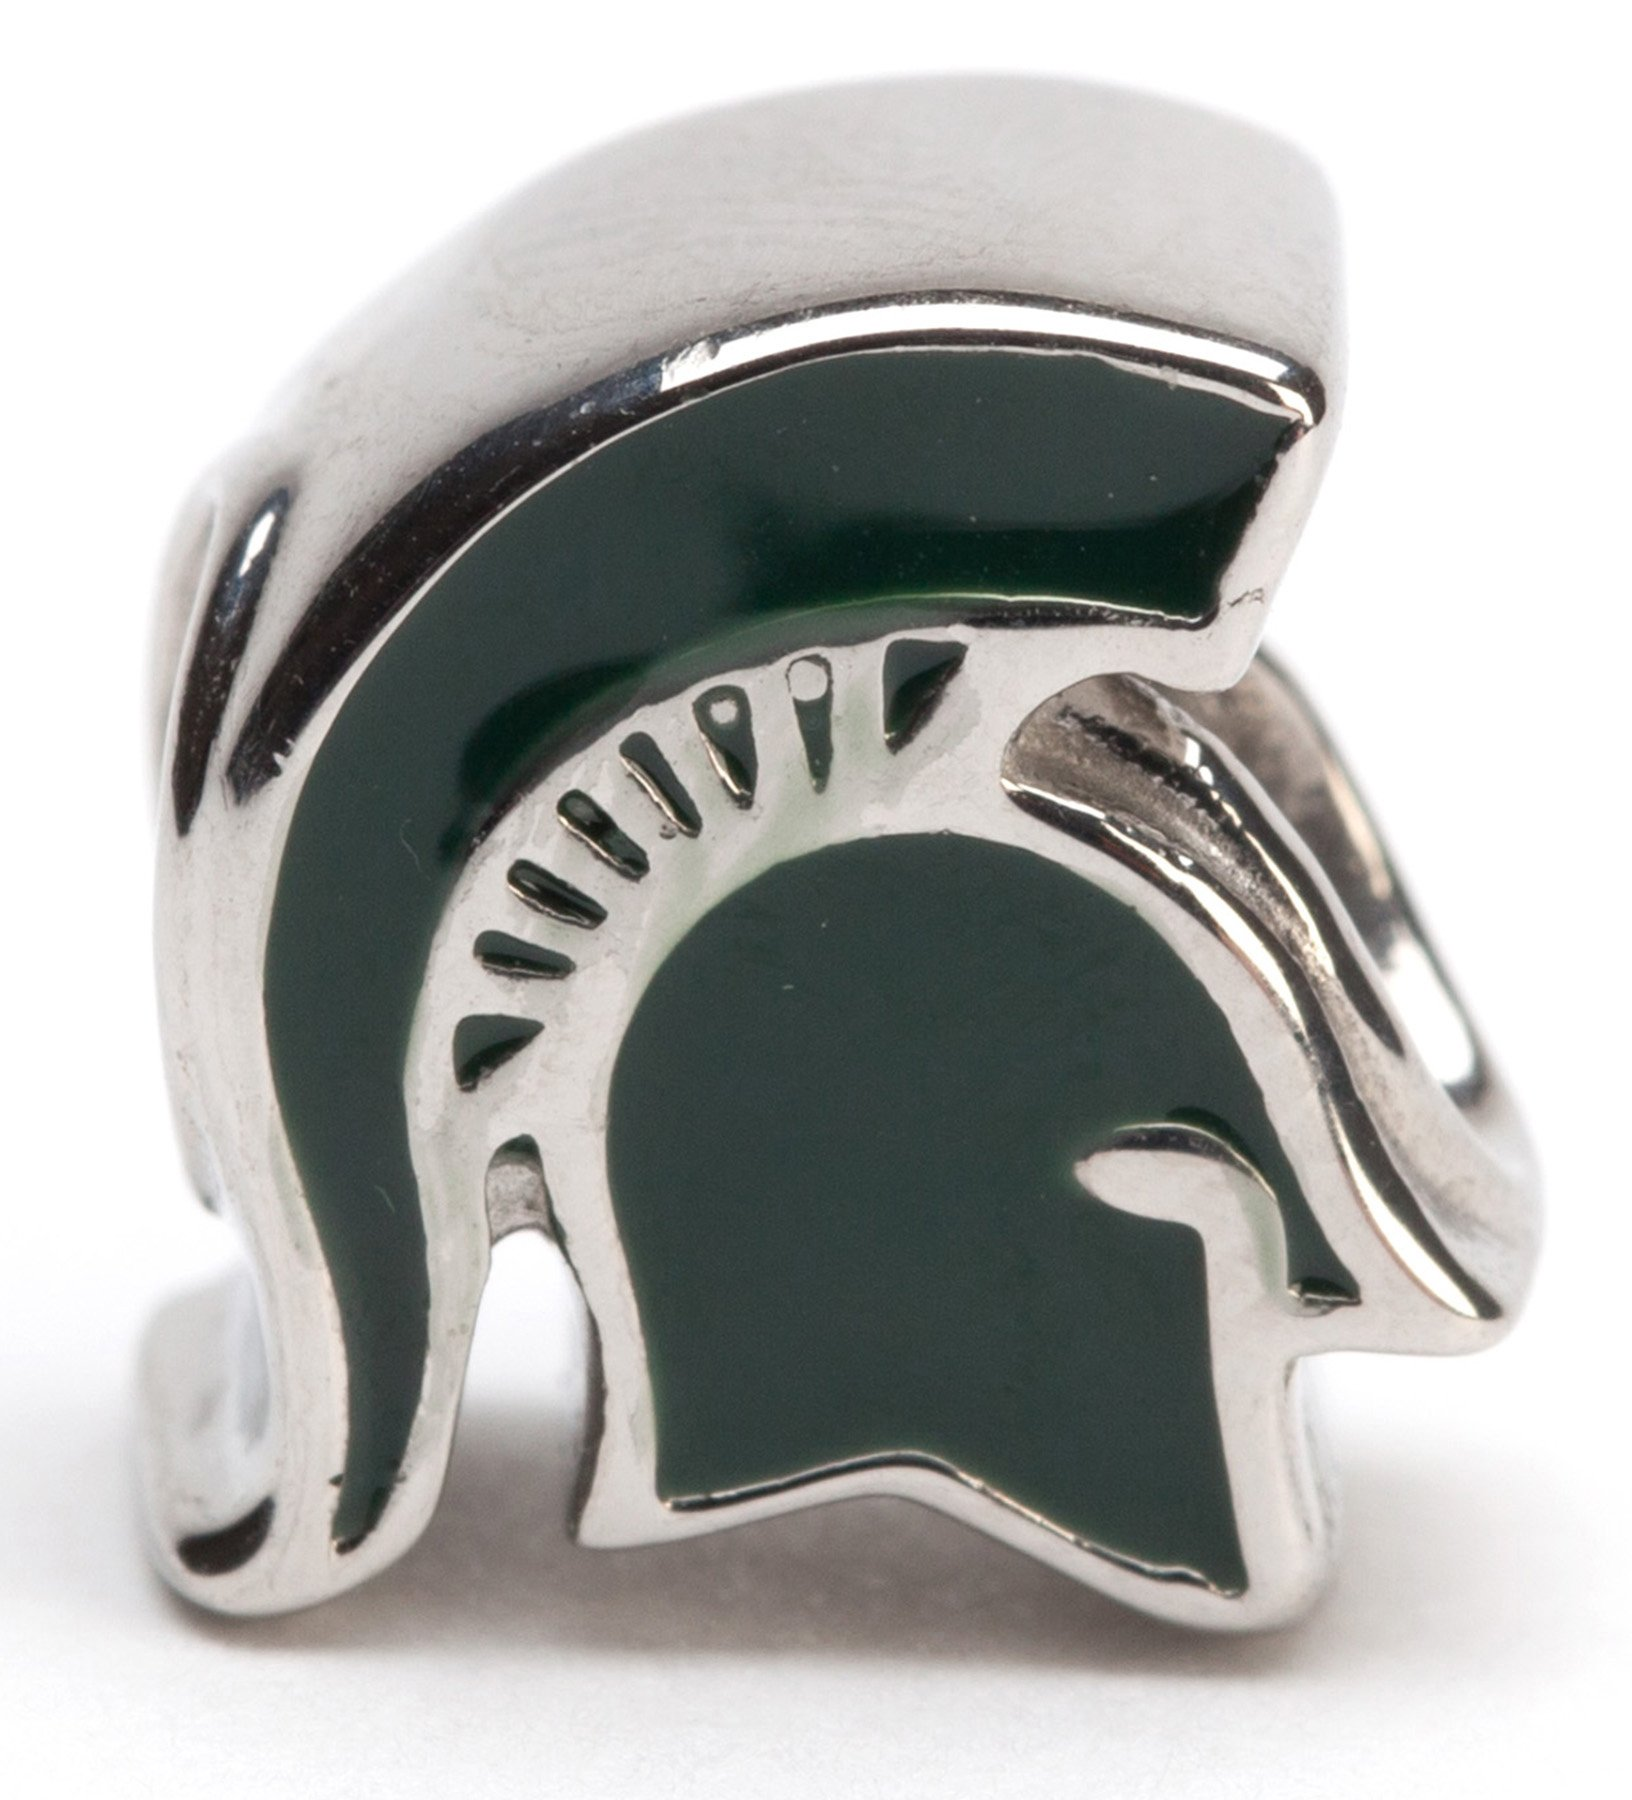 Michigan State Bracelet | MSU Spartans Charm Bracelet with 3 Spartan Charms and 4 Crystal Beads | Officially Licensed Michigan State University Jewelry | Michigan State Gifts | Stainless Steel by Stone Armory (Image #3)